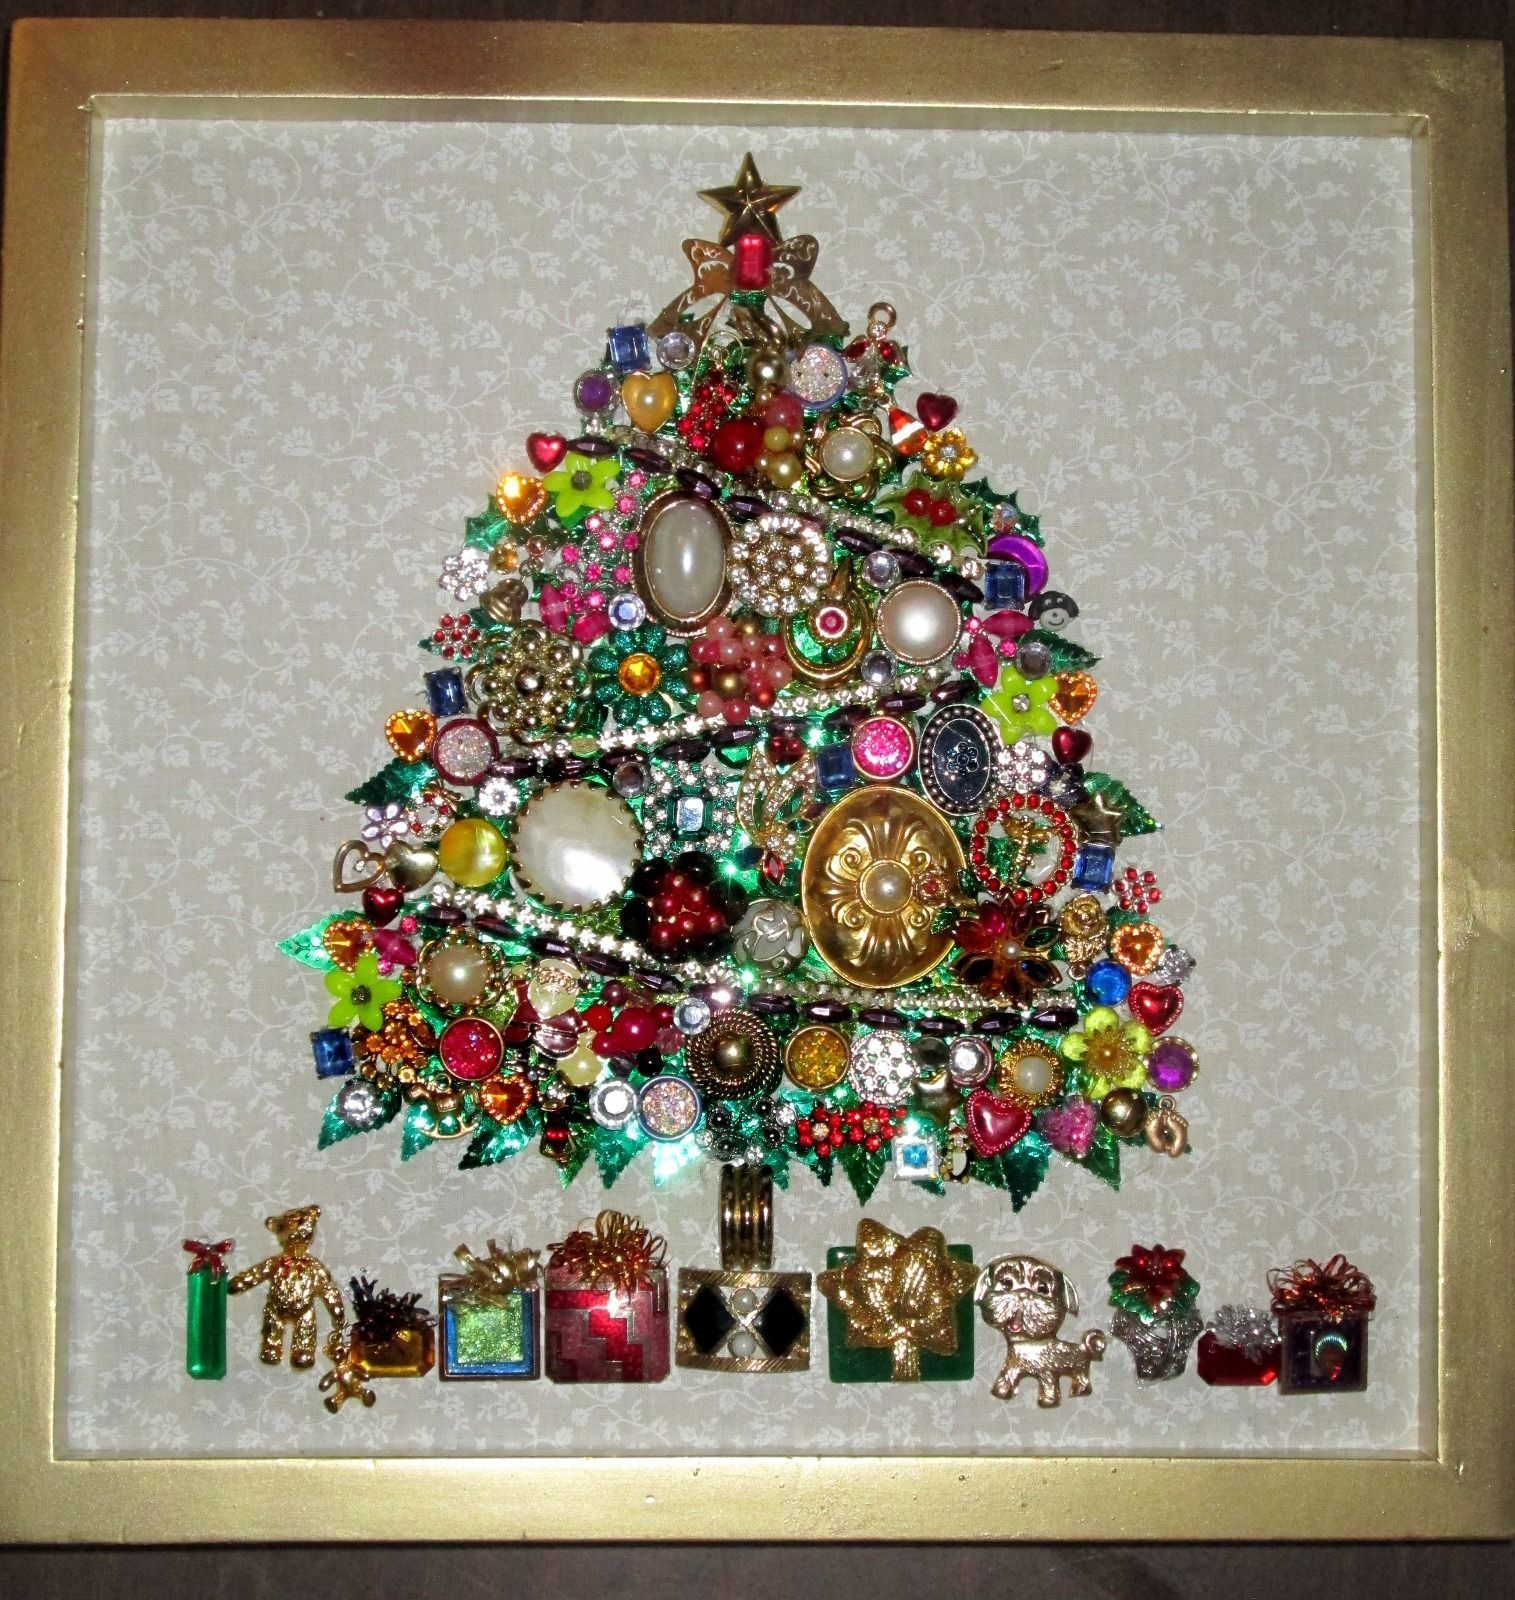 Ebay Us 125 00 New In Collectibles Holiday Seasonal Christmas Modern 1946 90 Jewelry Christmas Tree Old Jewelry Crafts Jeweled Christmas Trees